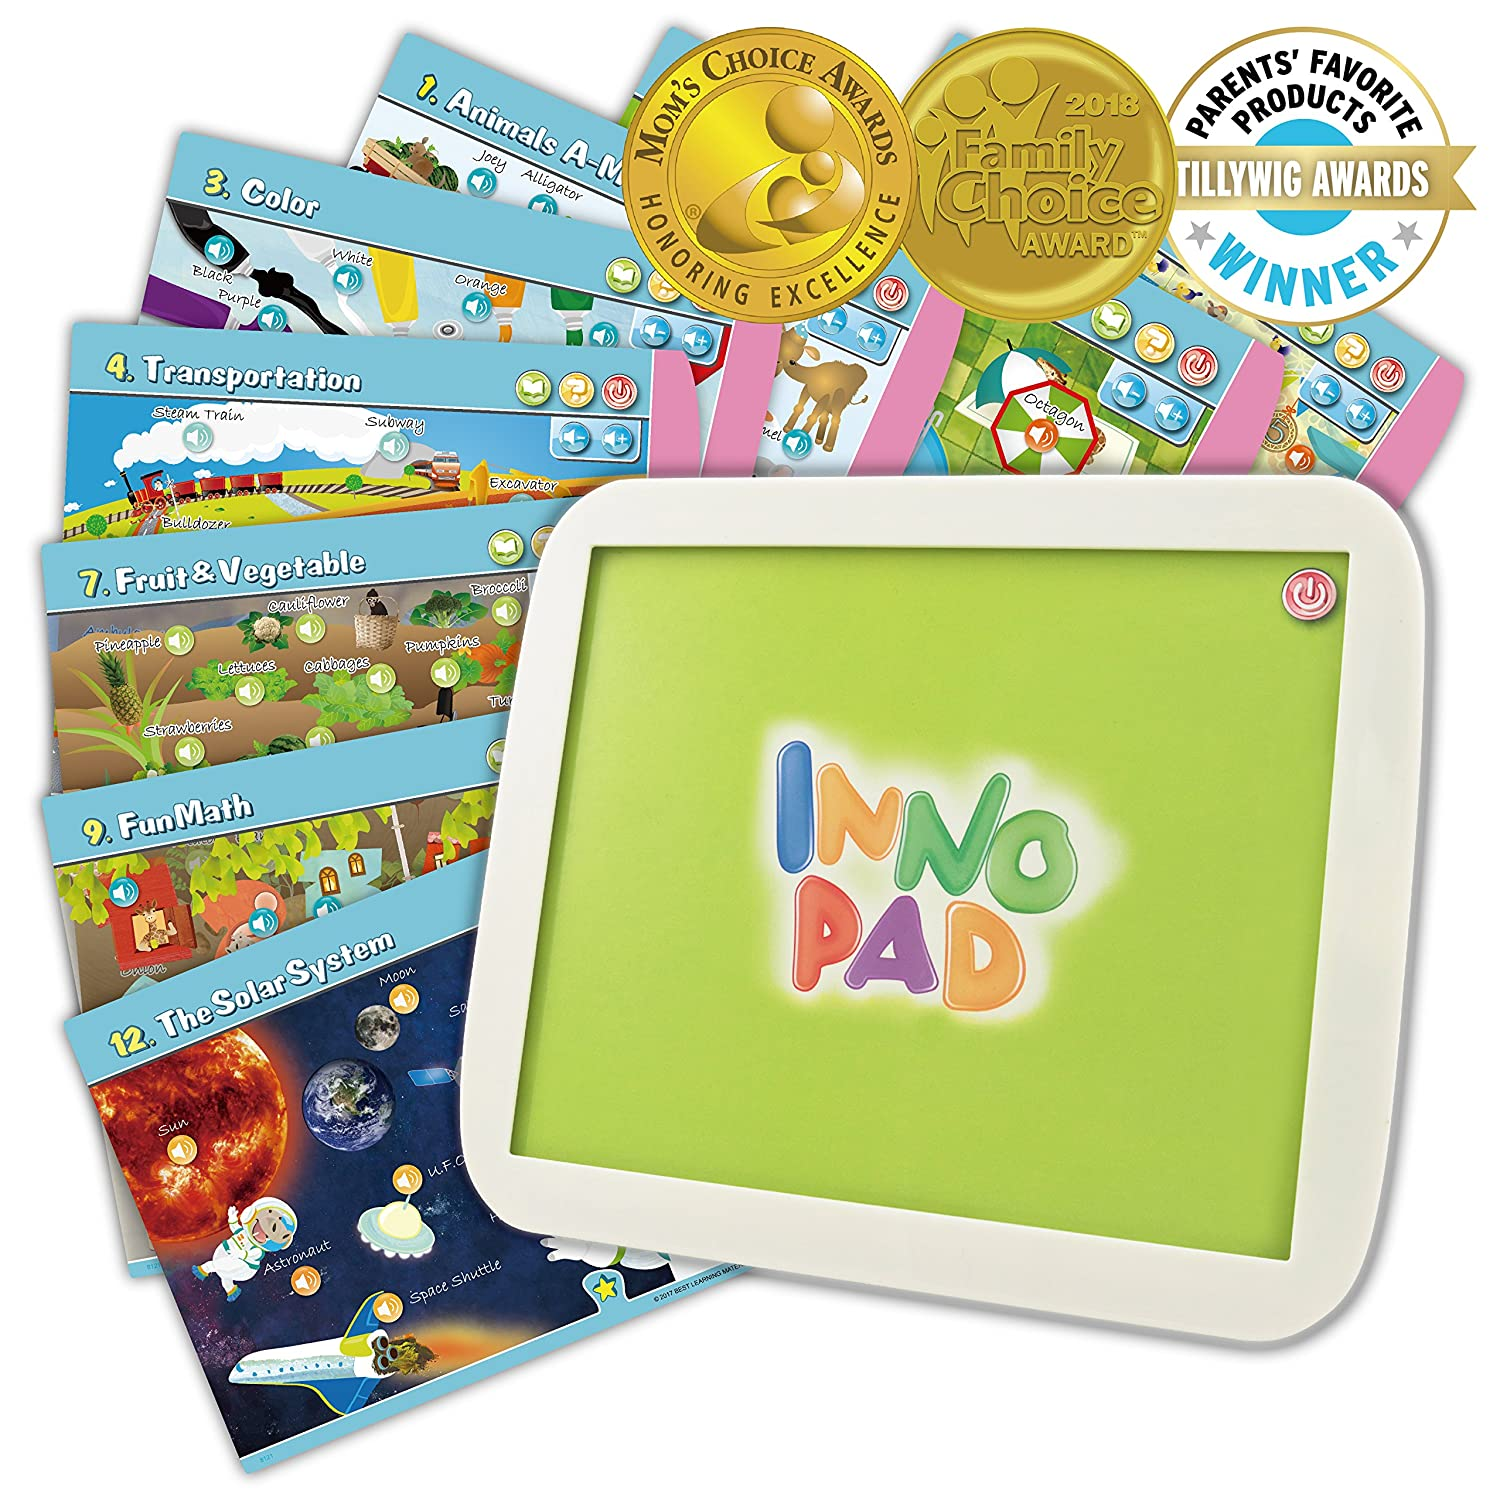 Amazon.com: BEST LEARNING INNO Pad My Fun Lessons - Educational ...